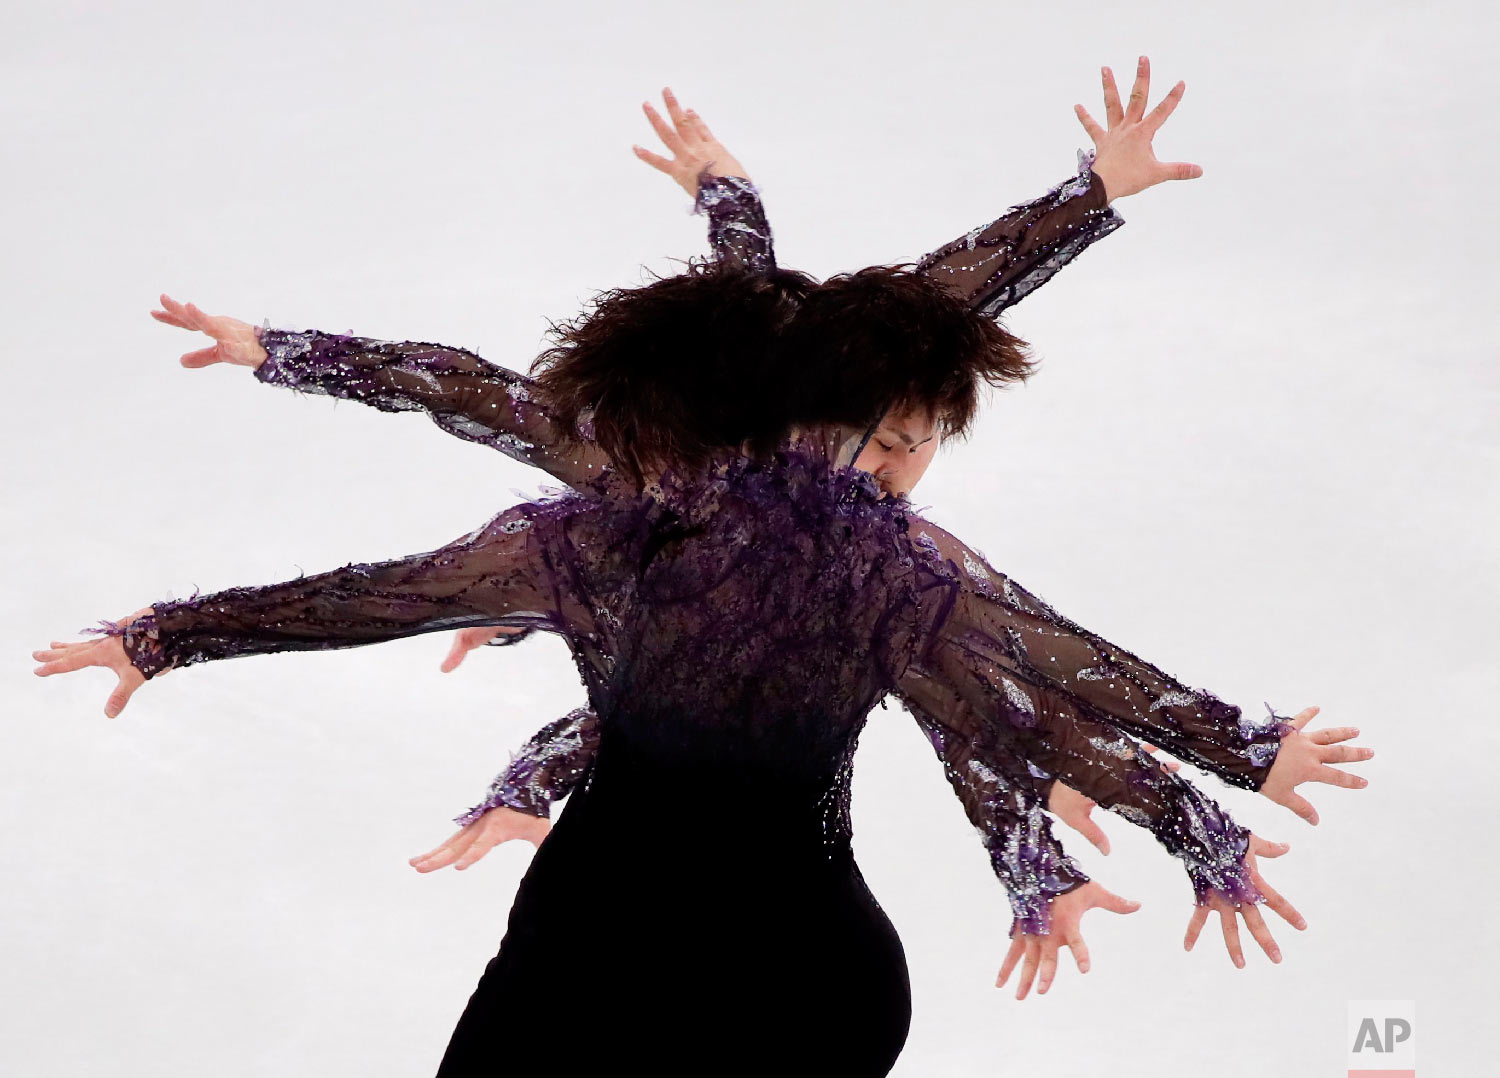 In this multiple exposed image Japan's Shoma Uno performs in the men's single short program team event at the 2018 Winter Olympics in Gangneung, South Korea, Friday, Feb. 9, 2018. (AP Photo/Julie Jacobson)